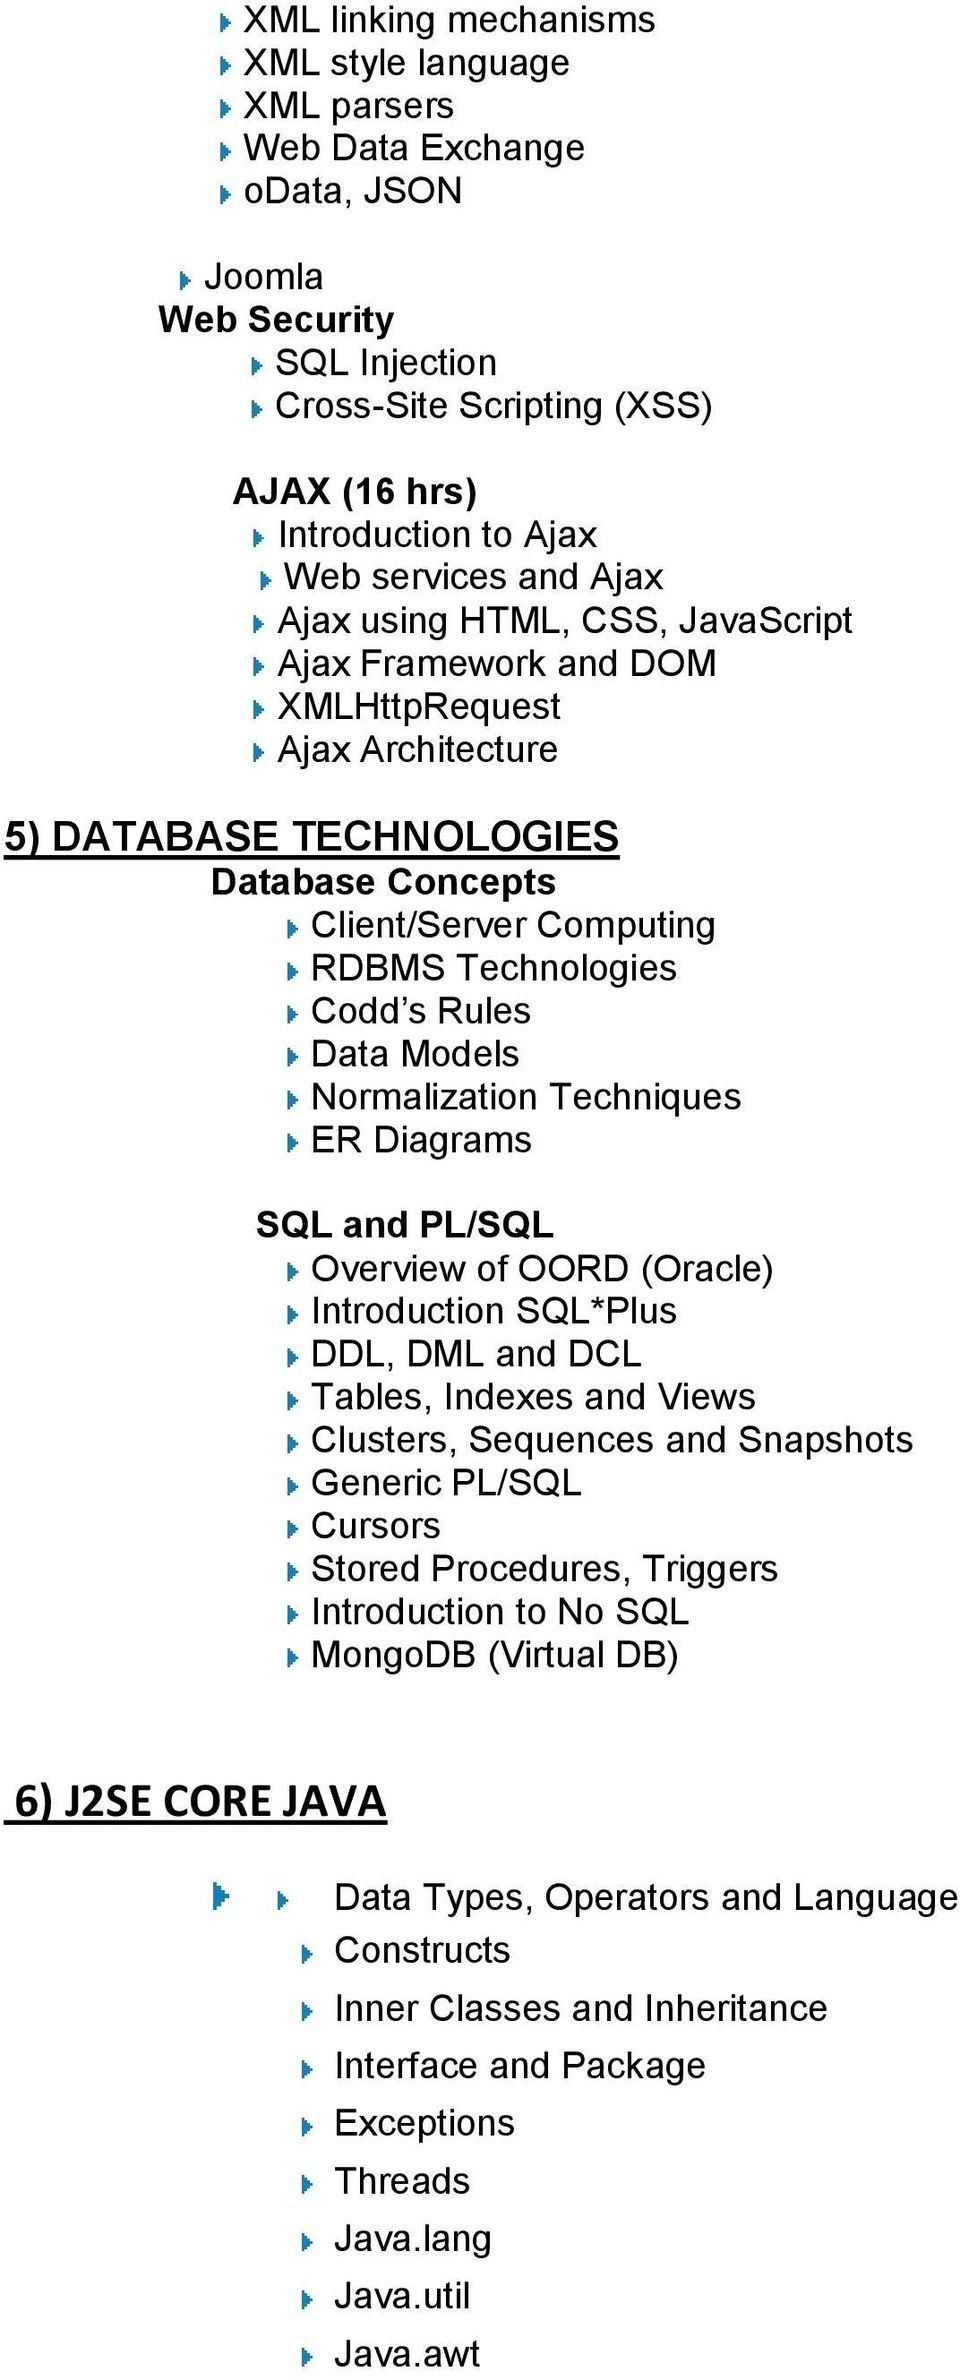 Models Normalization Techniques ER Diagrams SQL and PL/SQL Overview of OORD (Oracle) Introduction SQL*Plus DDL, DML and DCL Tables, Indexes and Views Clusters, Sequences and Snapshots Generic PL/SQL